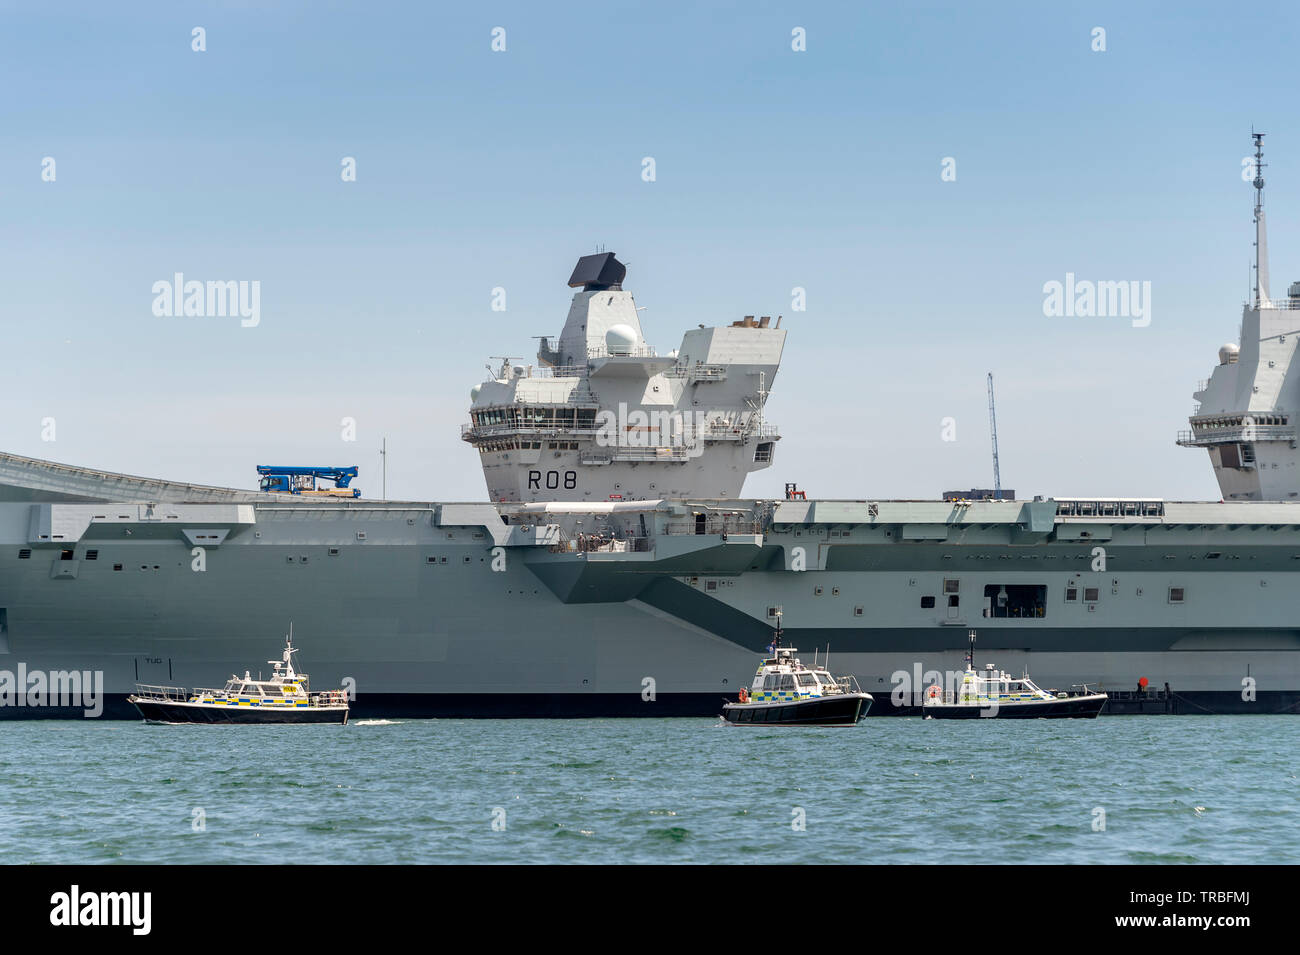 HMS Queen Elizabeth in Portsmouth Harbour with three police boats guarding, ready for Donald Trumps state visit on June 5th 2019 - Stock Image